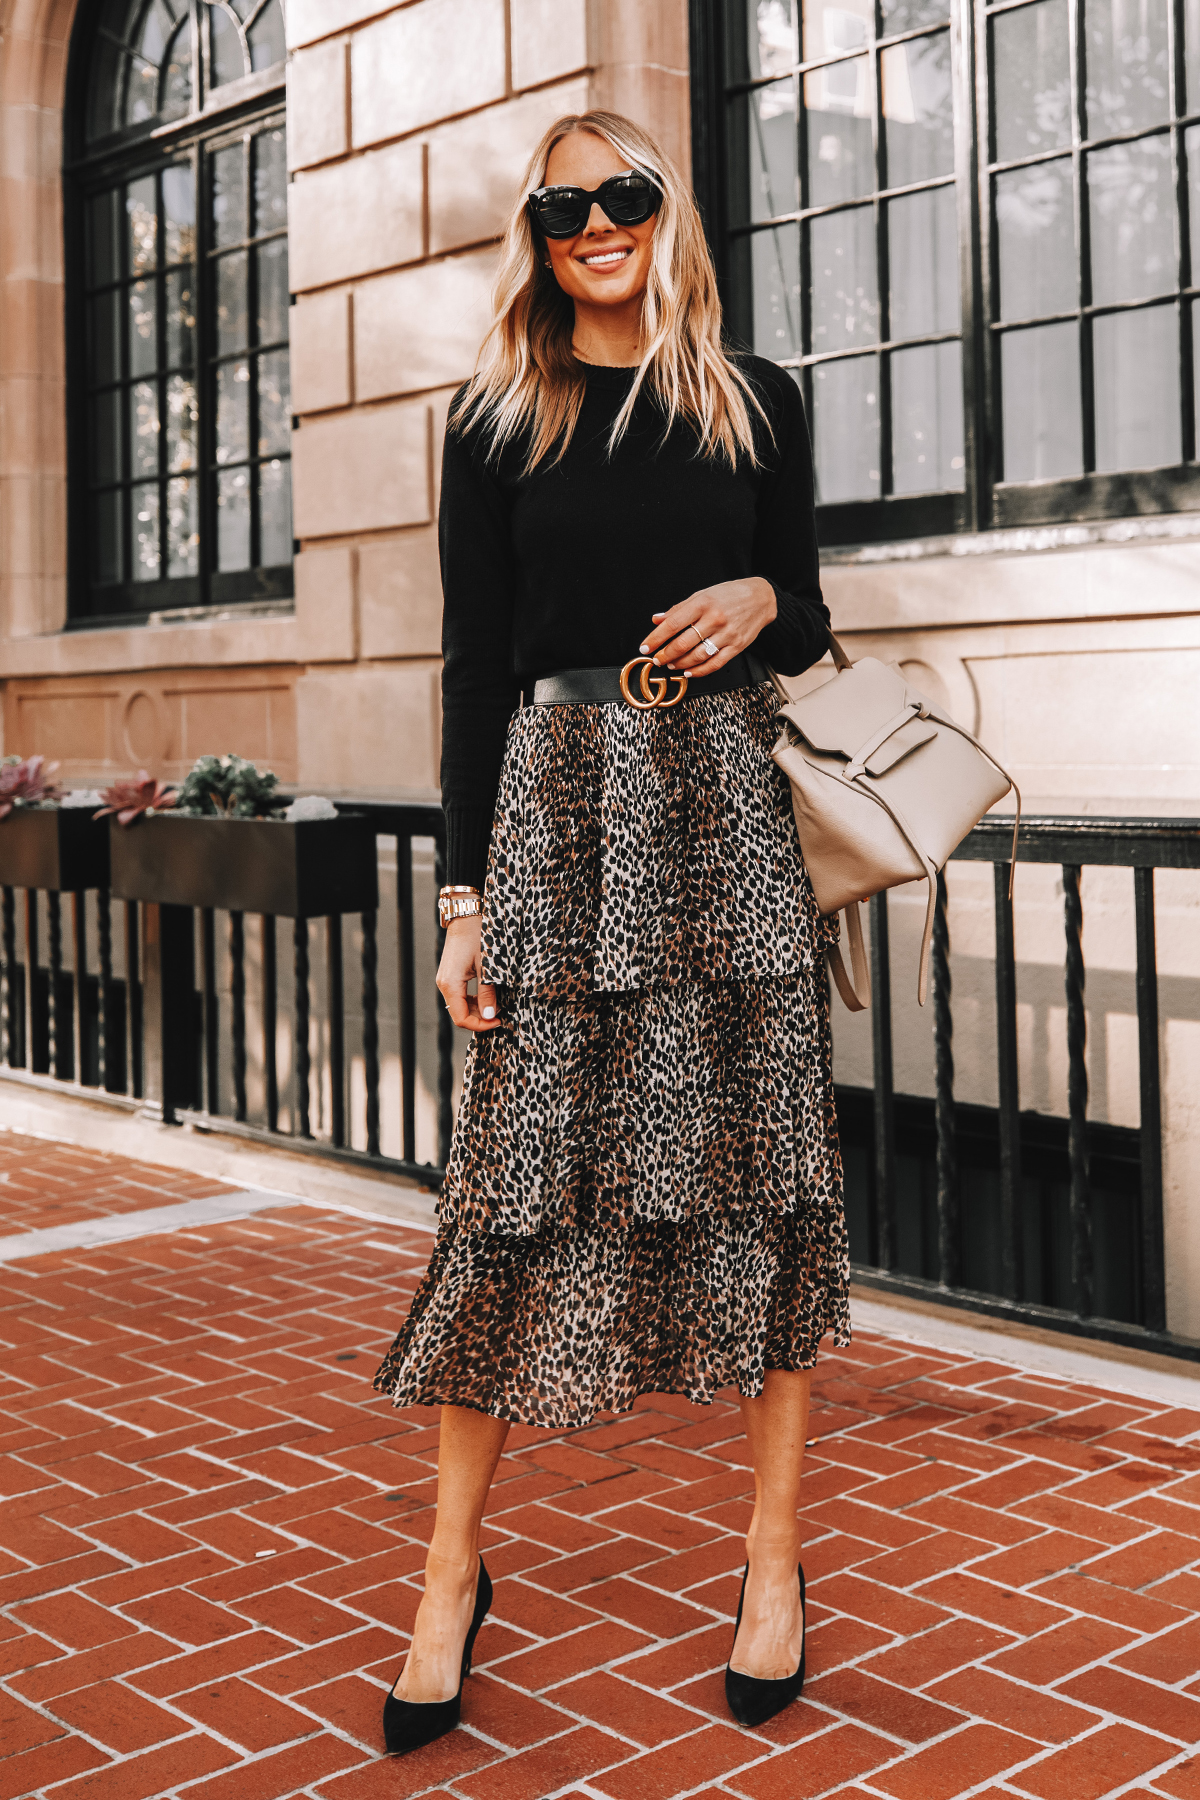 Fashion Jackson Wearing Black Sweater Topshop Leopard Midi Skirt Gucci Belt Black Pumps Workwear Outfit